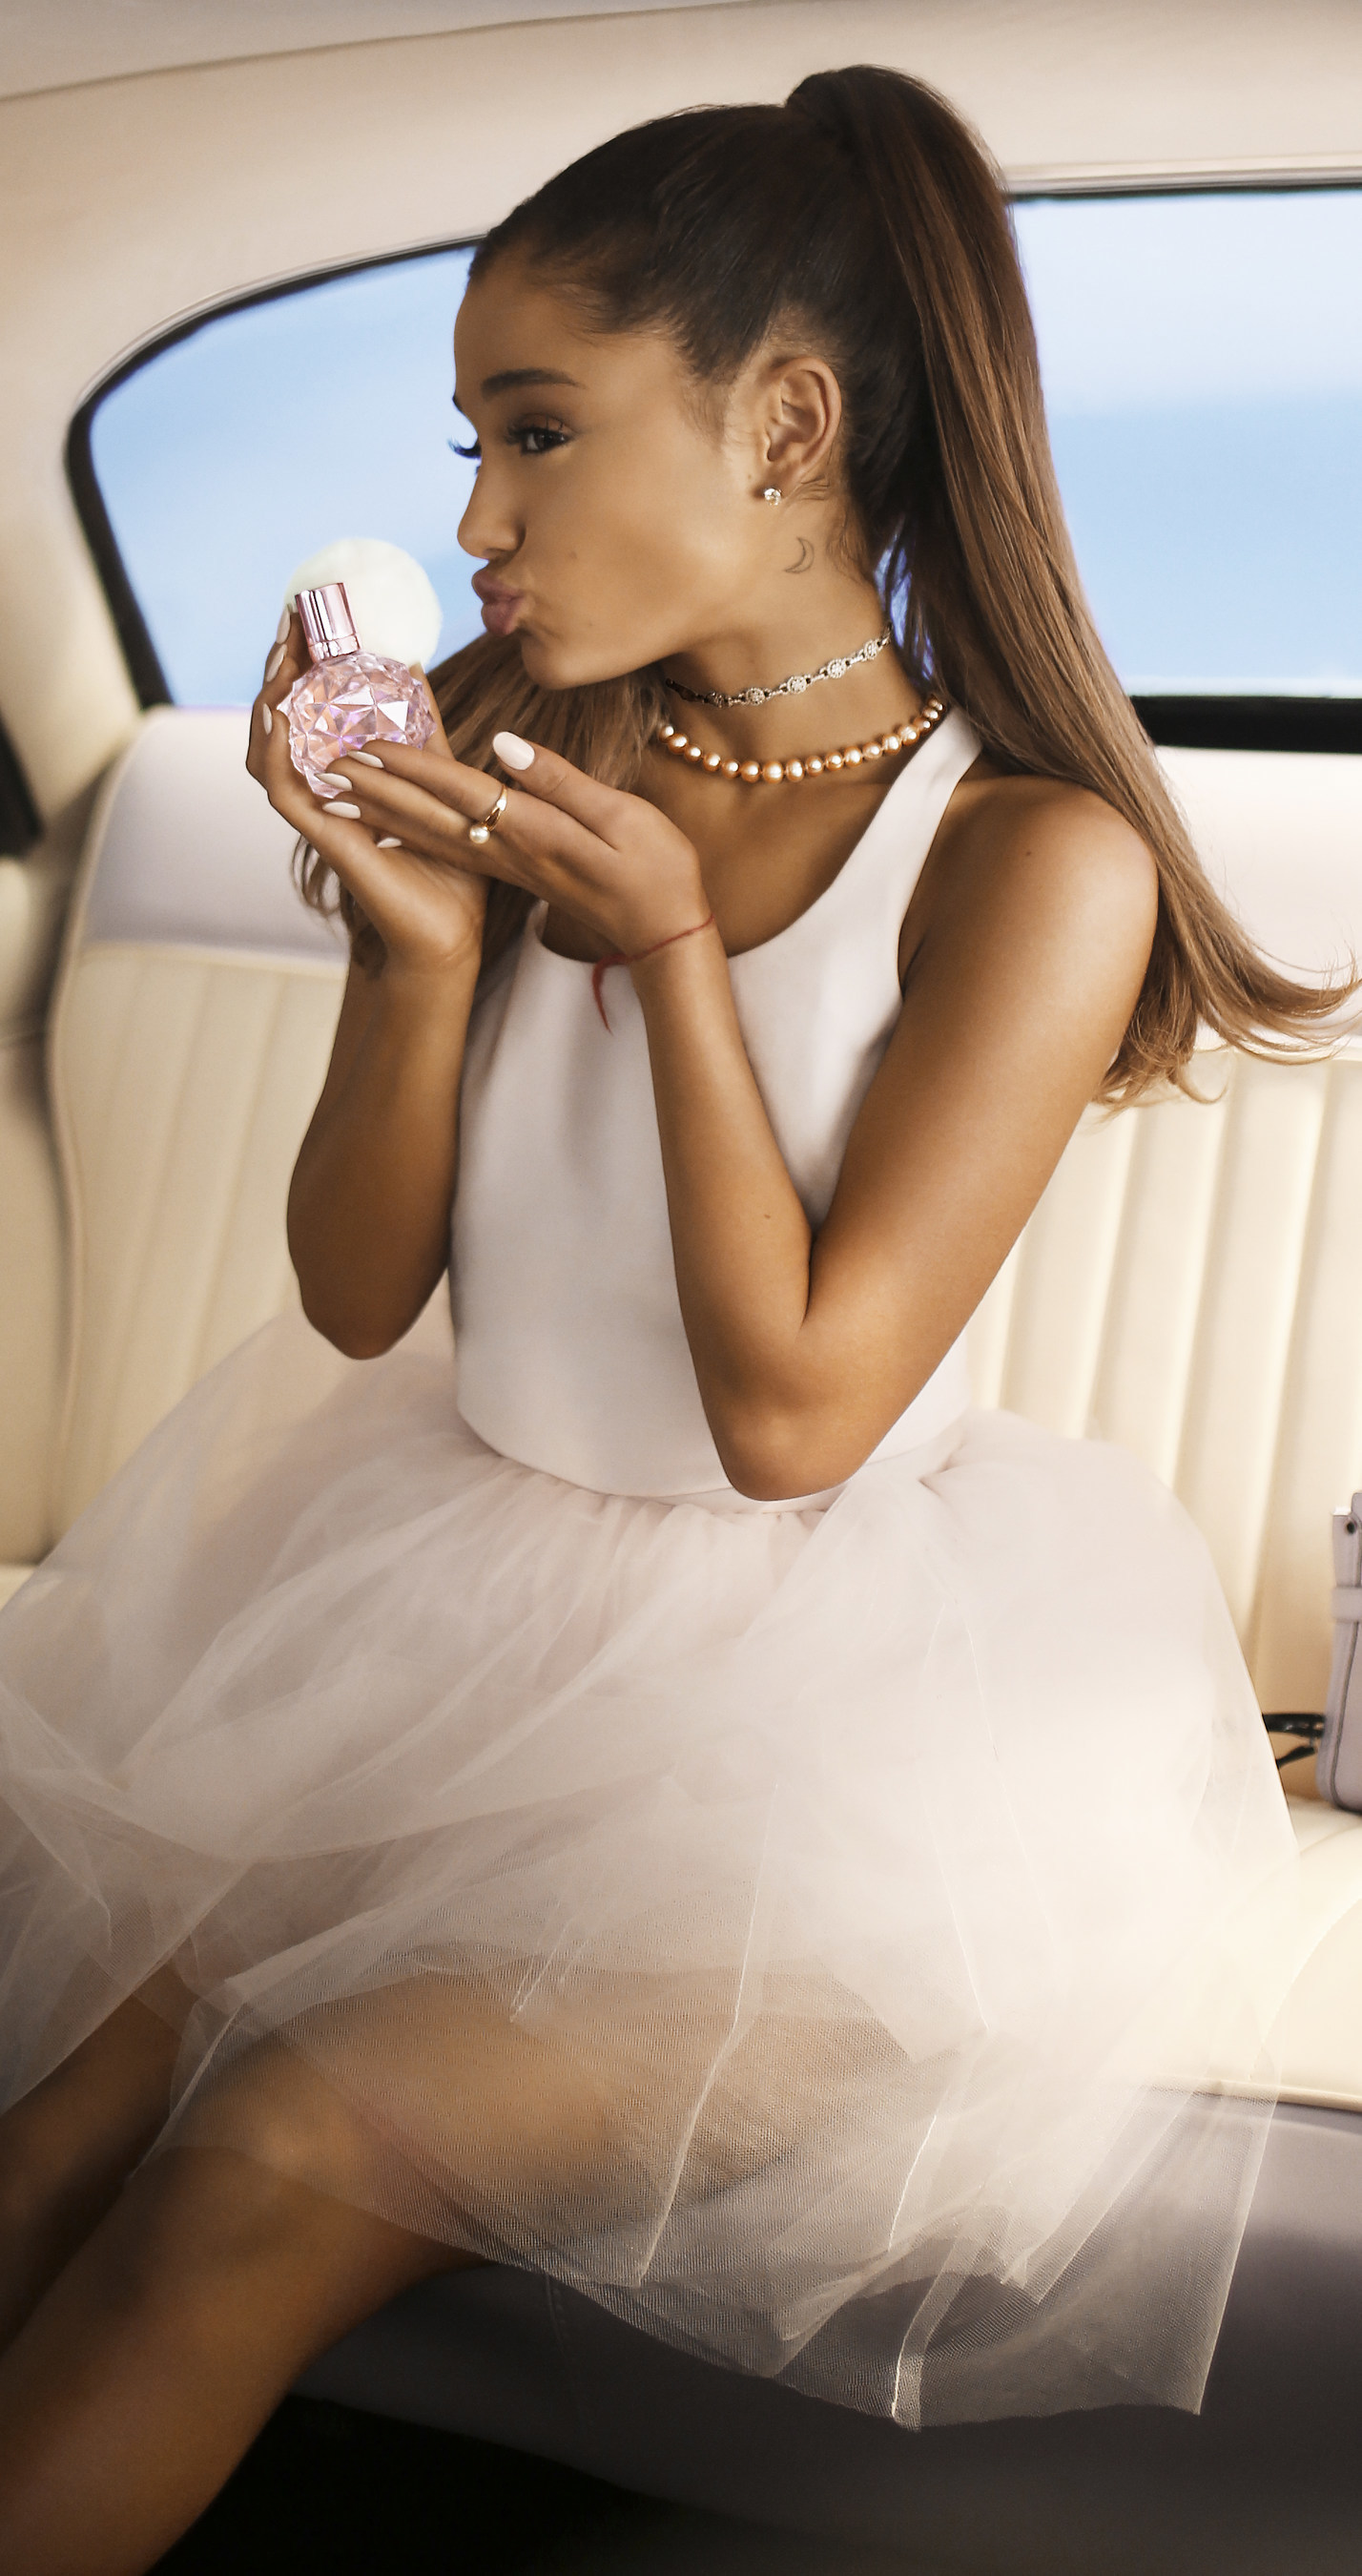 Ariana Grande launches debut fragrance ARI by Ariana Grande in September 2015.